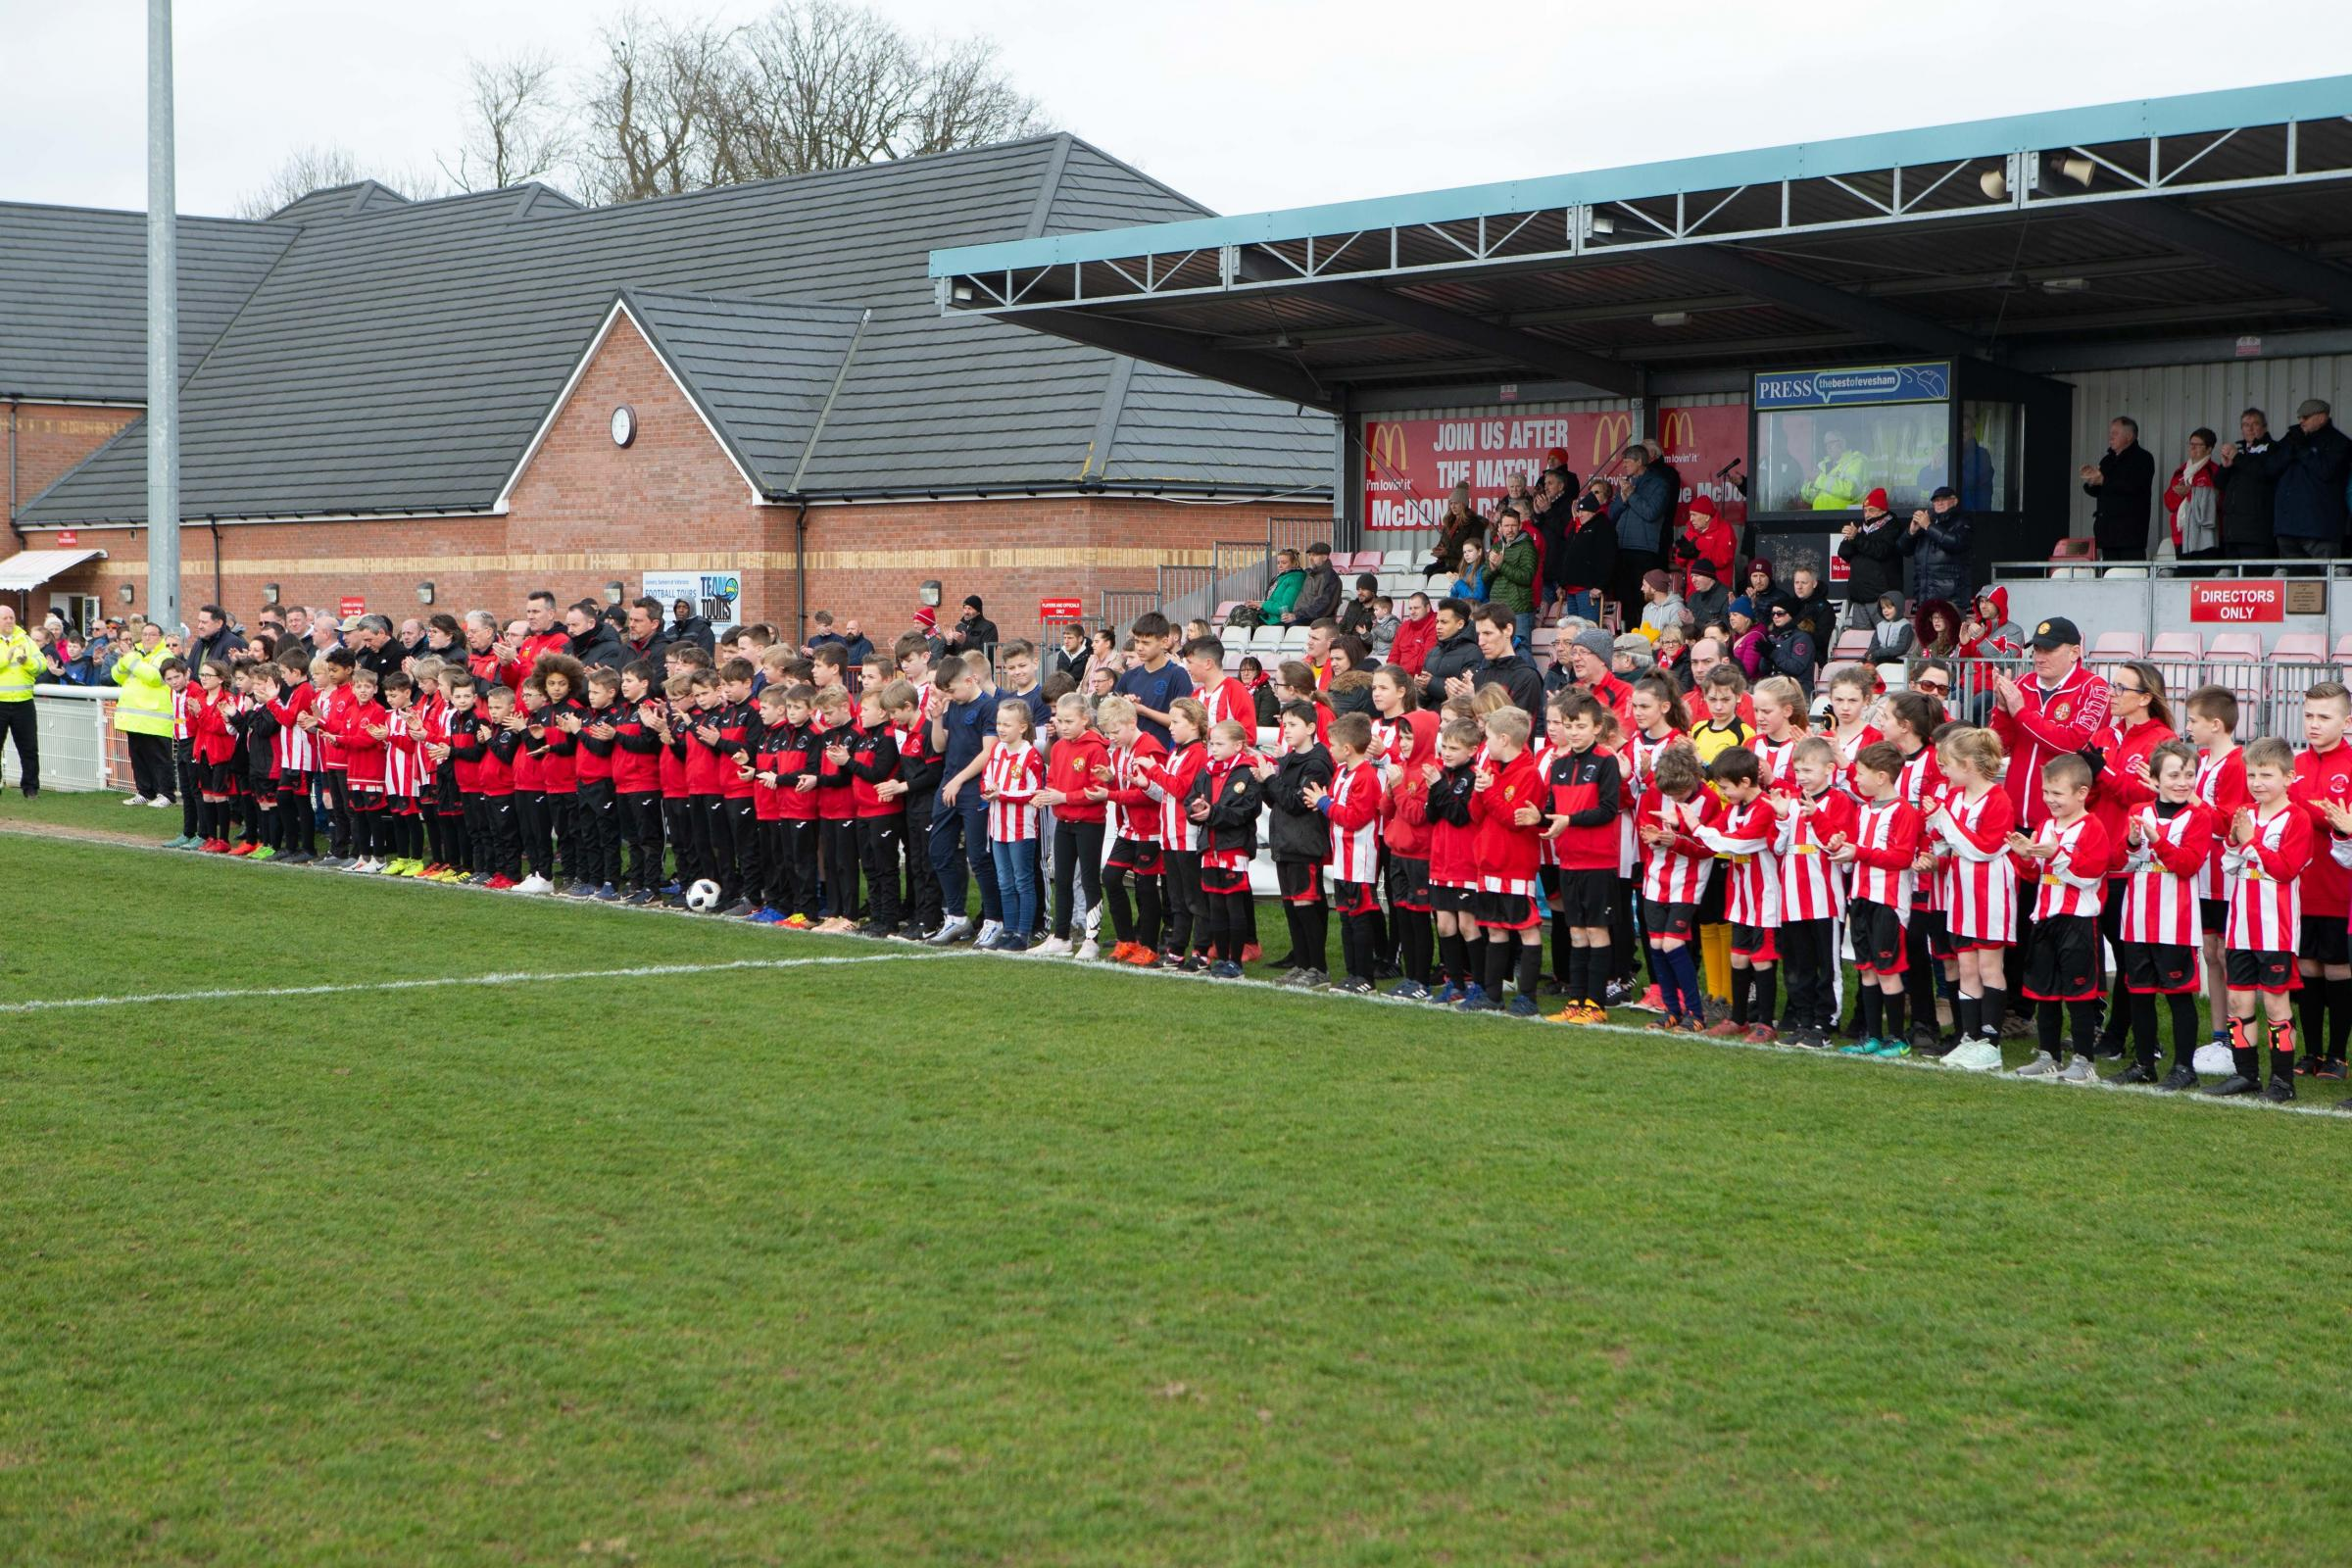 THANK YOU, DAVE... Evesham United's youth section pays tribute to Dave Giles. Pics: stuartpurfield.co.uk